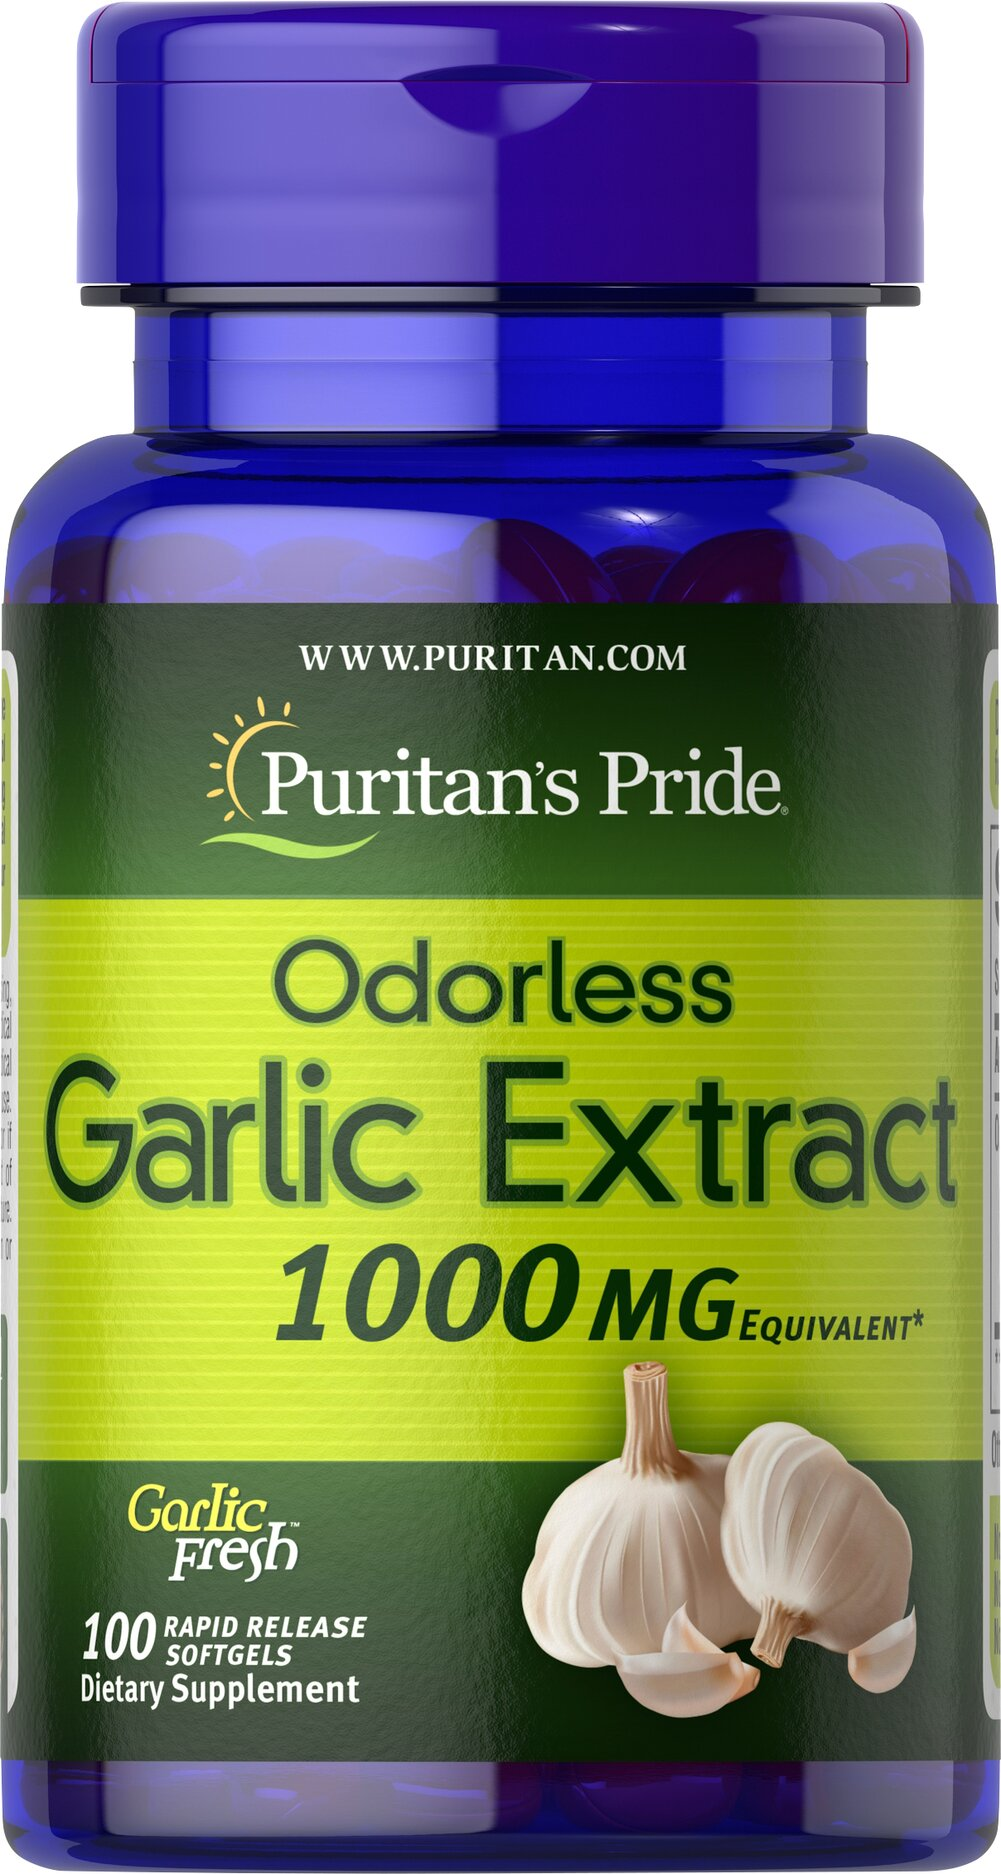 Odorless Garlic 1000 mg <p>Supports healthy cholesterol levels**</p><p>Provides antioxidant support for the heart**</p><p>Helps maintain healthy circulation**</p><p>Garlic promotes heart and cardiovascular health and helps maintain cholesterol levels that are already within the normal range.** Our specialized cold processing method preserves the natural goodness while reducing the odor.</p> 100 Softgels 1000 mg $9.29